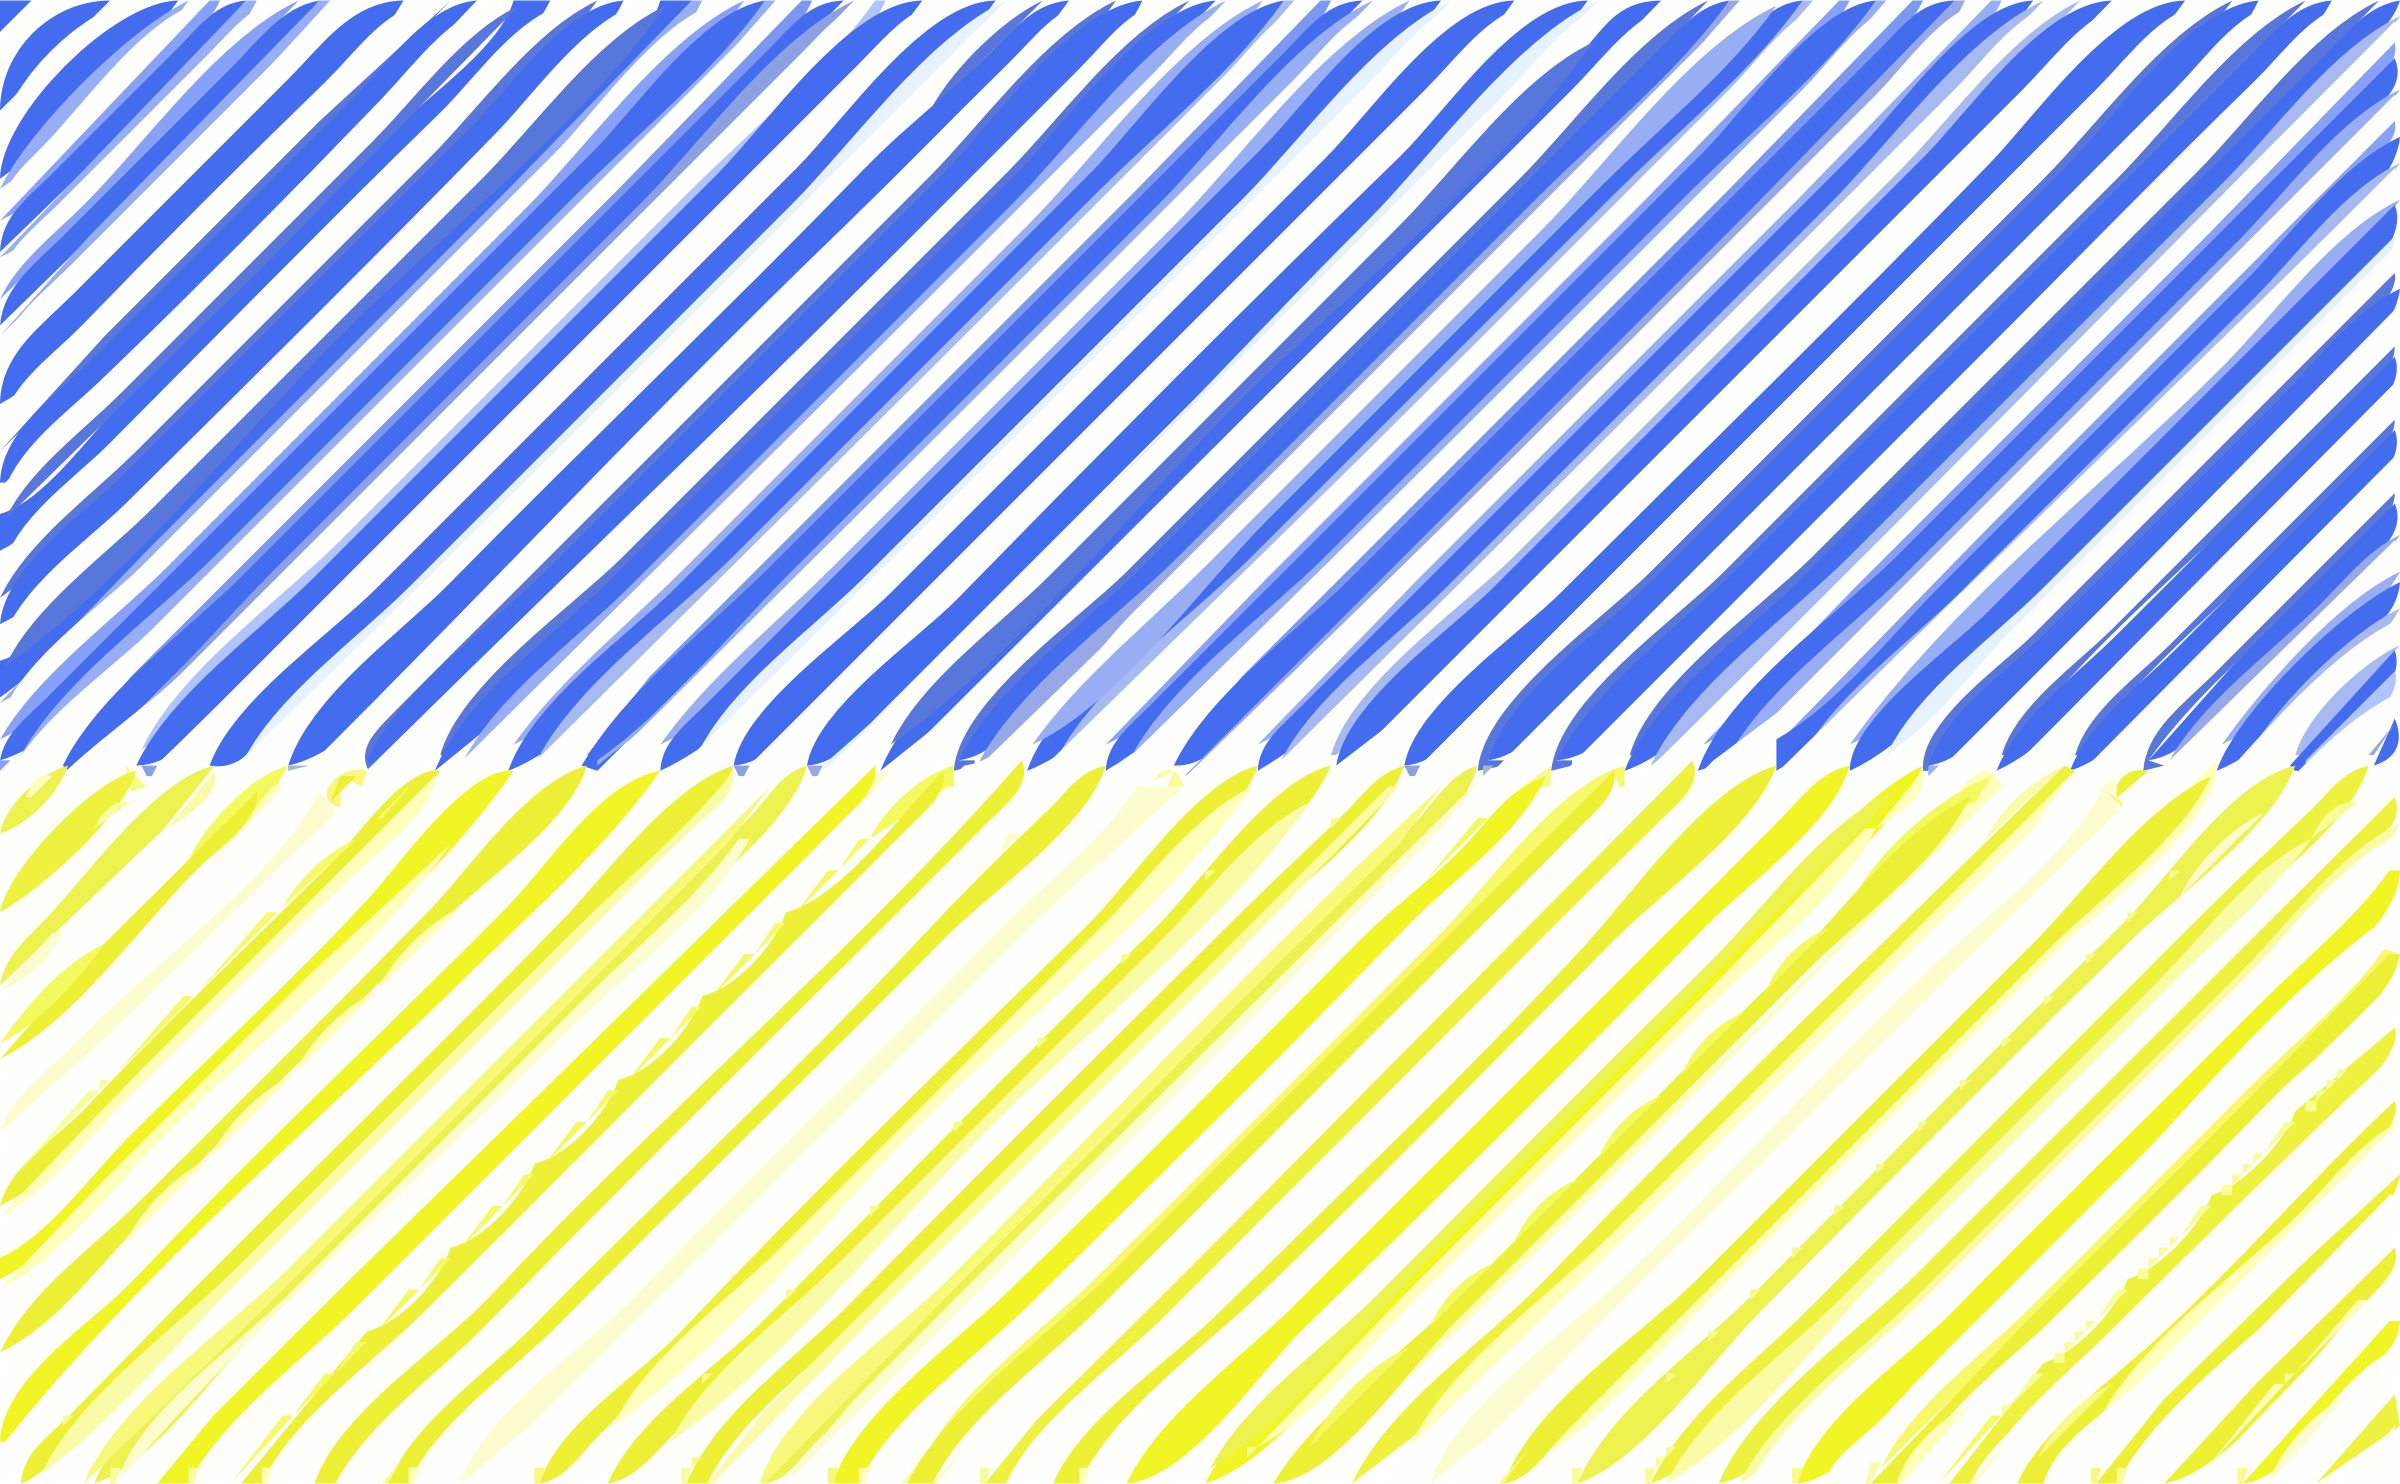 Ukraine flag linear by Joesph